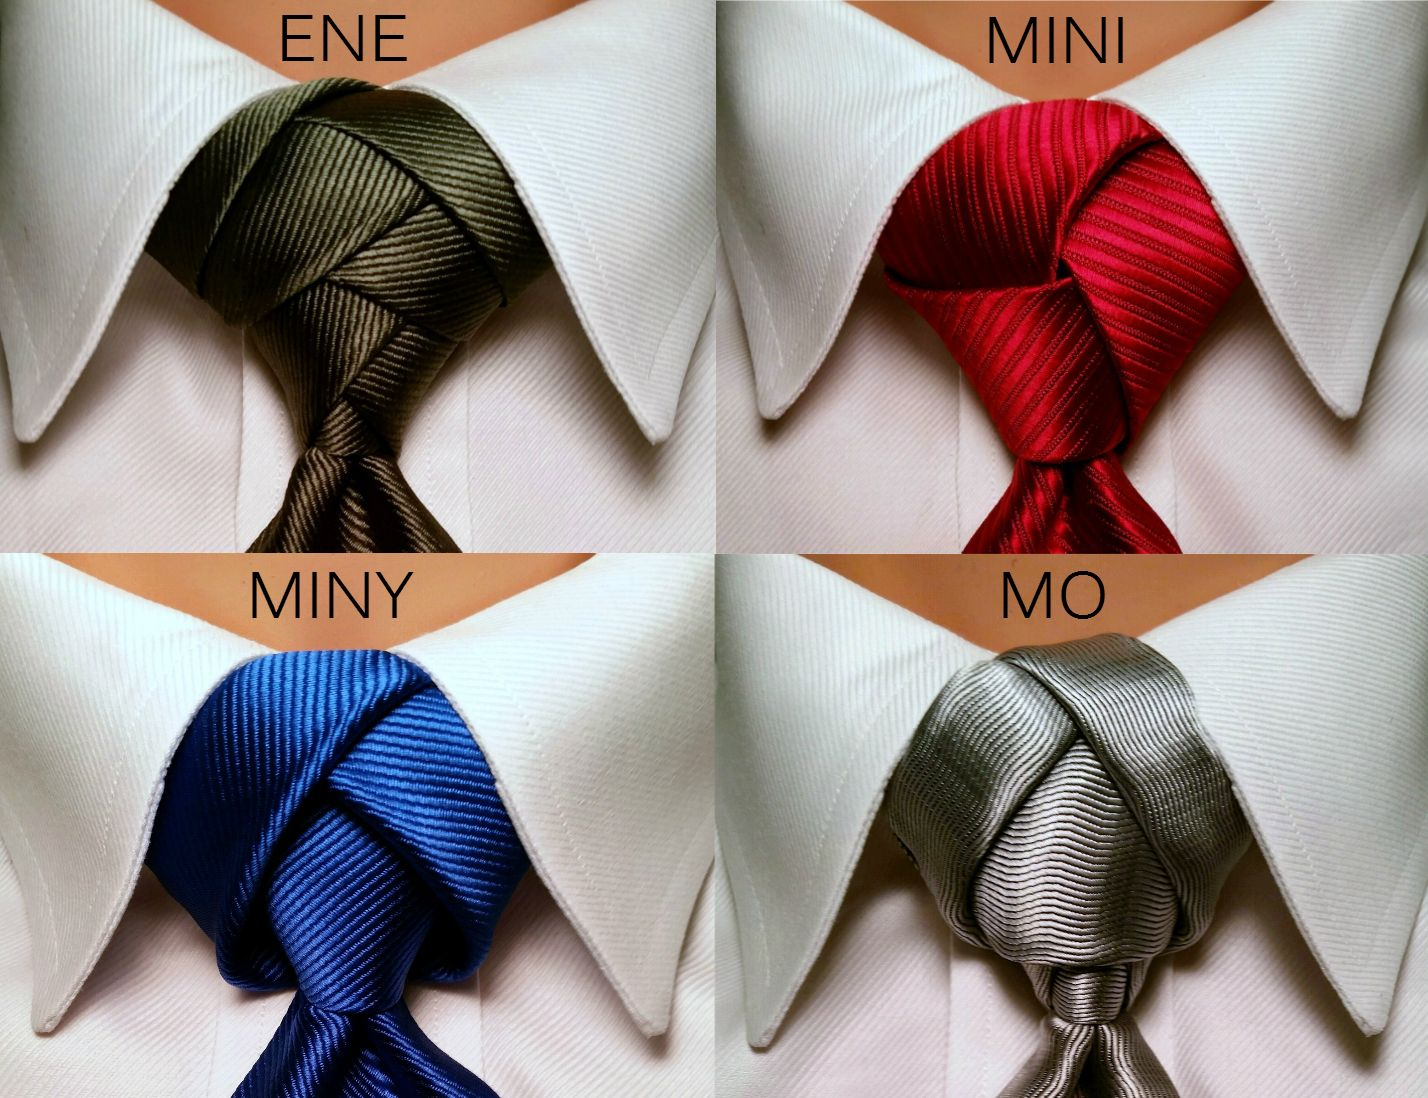 How to tie the dread knot youtube how to tie necktie knots how to tie the dread knot youtube how to tie necktie knots pinterest dreads youtube and necktie knots ccuart Gallery